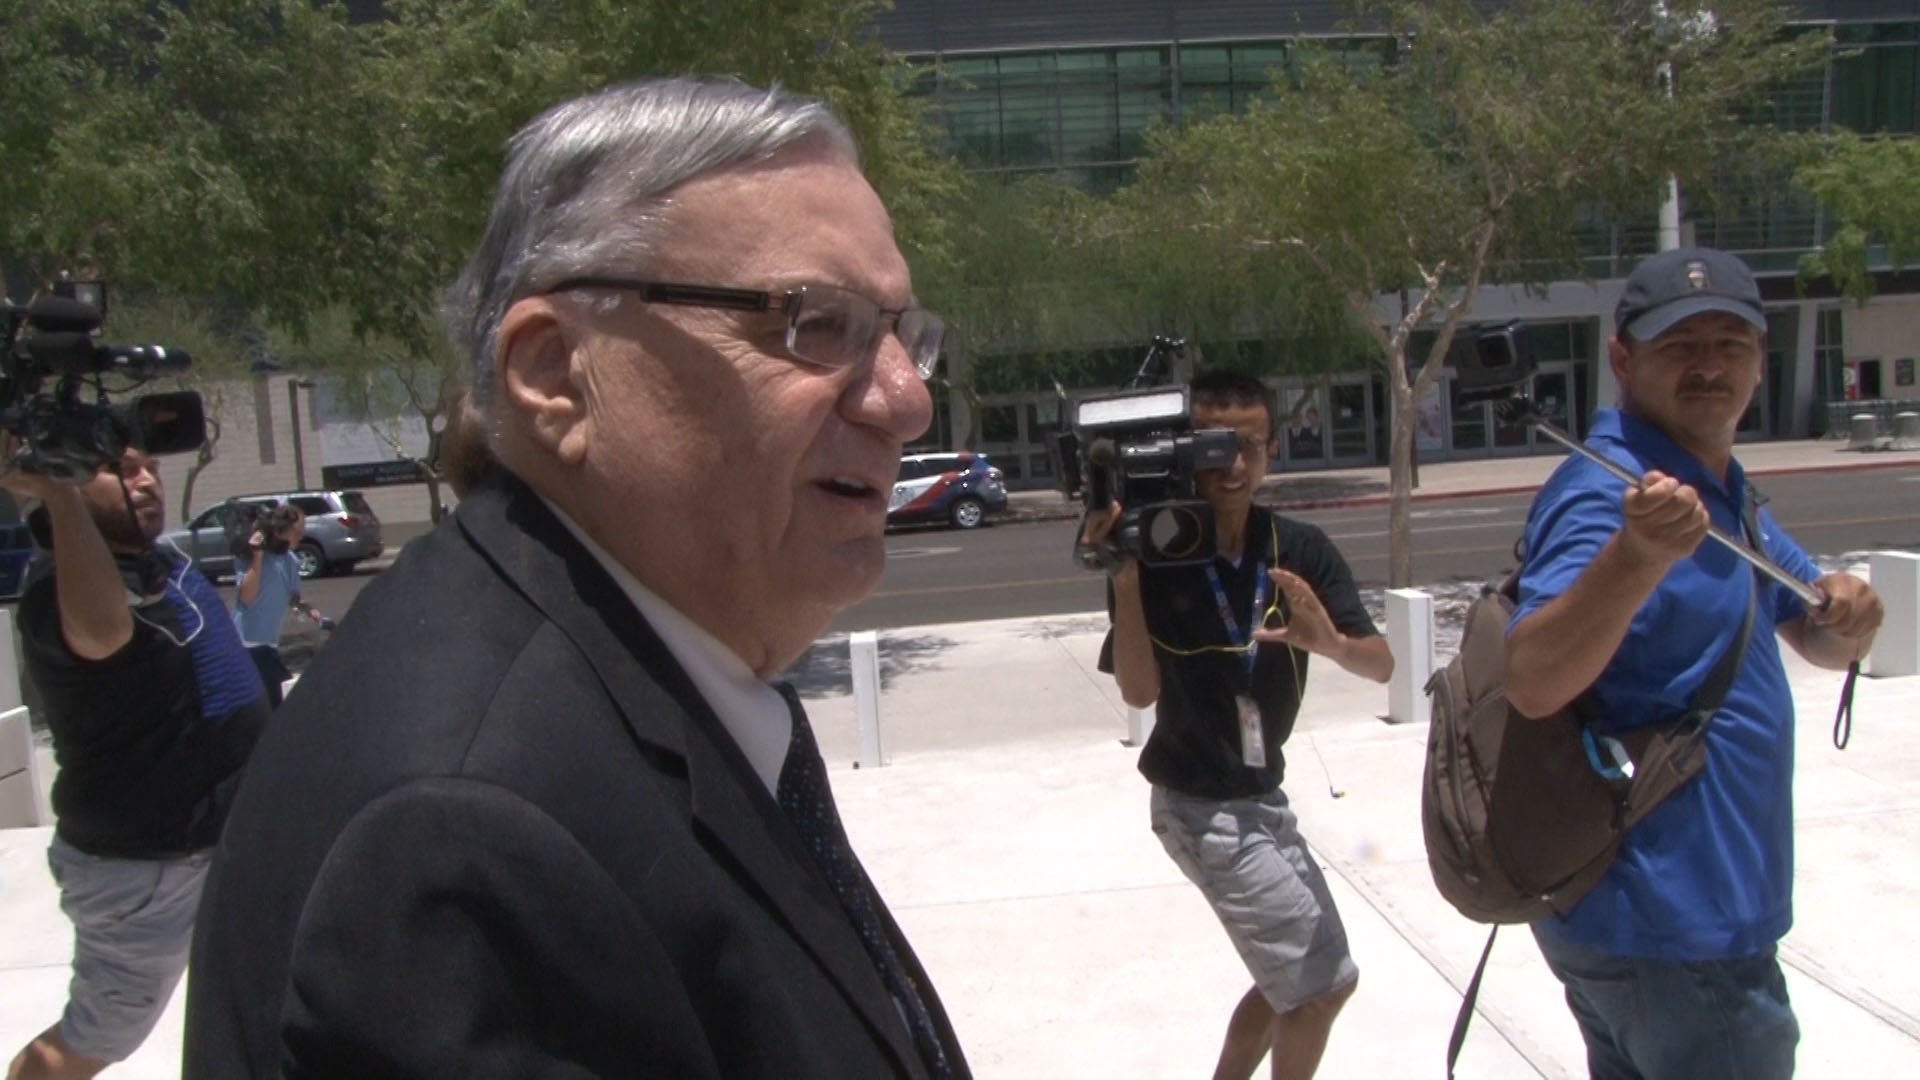 Former Maricopa County Sheriff Joe Arpaio faces criminal contempt charges in federal court. (Source: Tyler Fingert/Cronkite News)